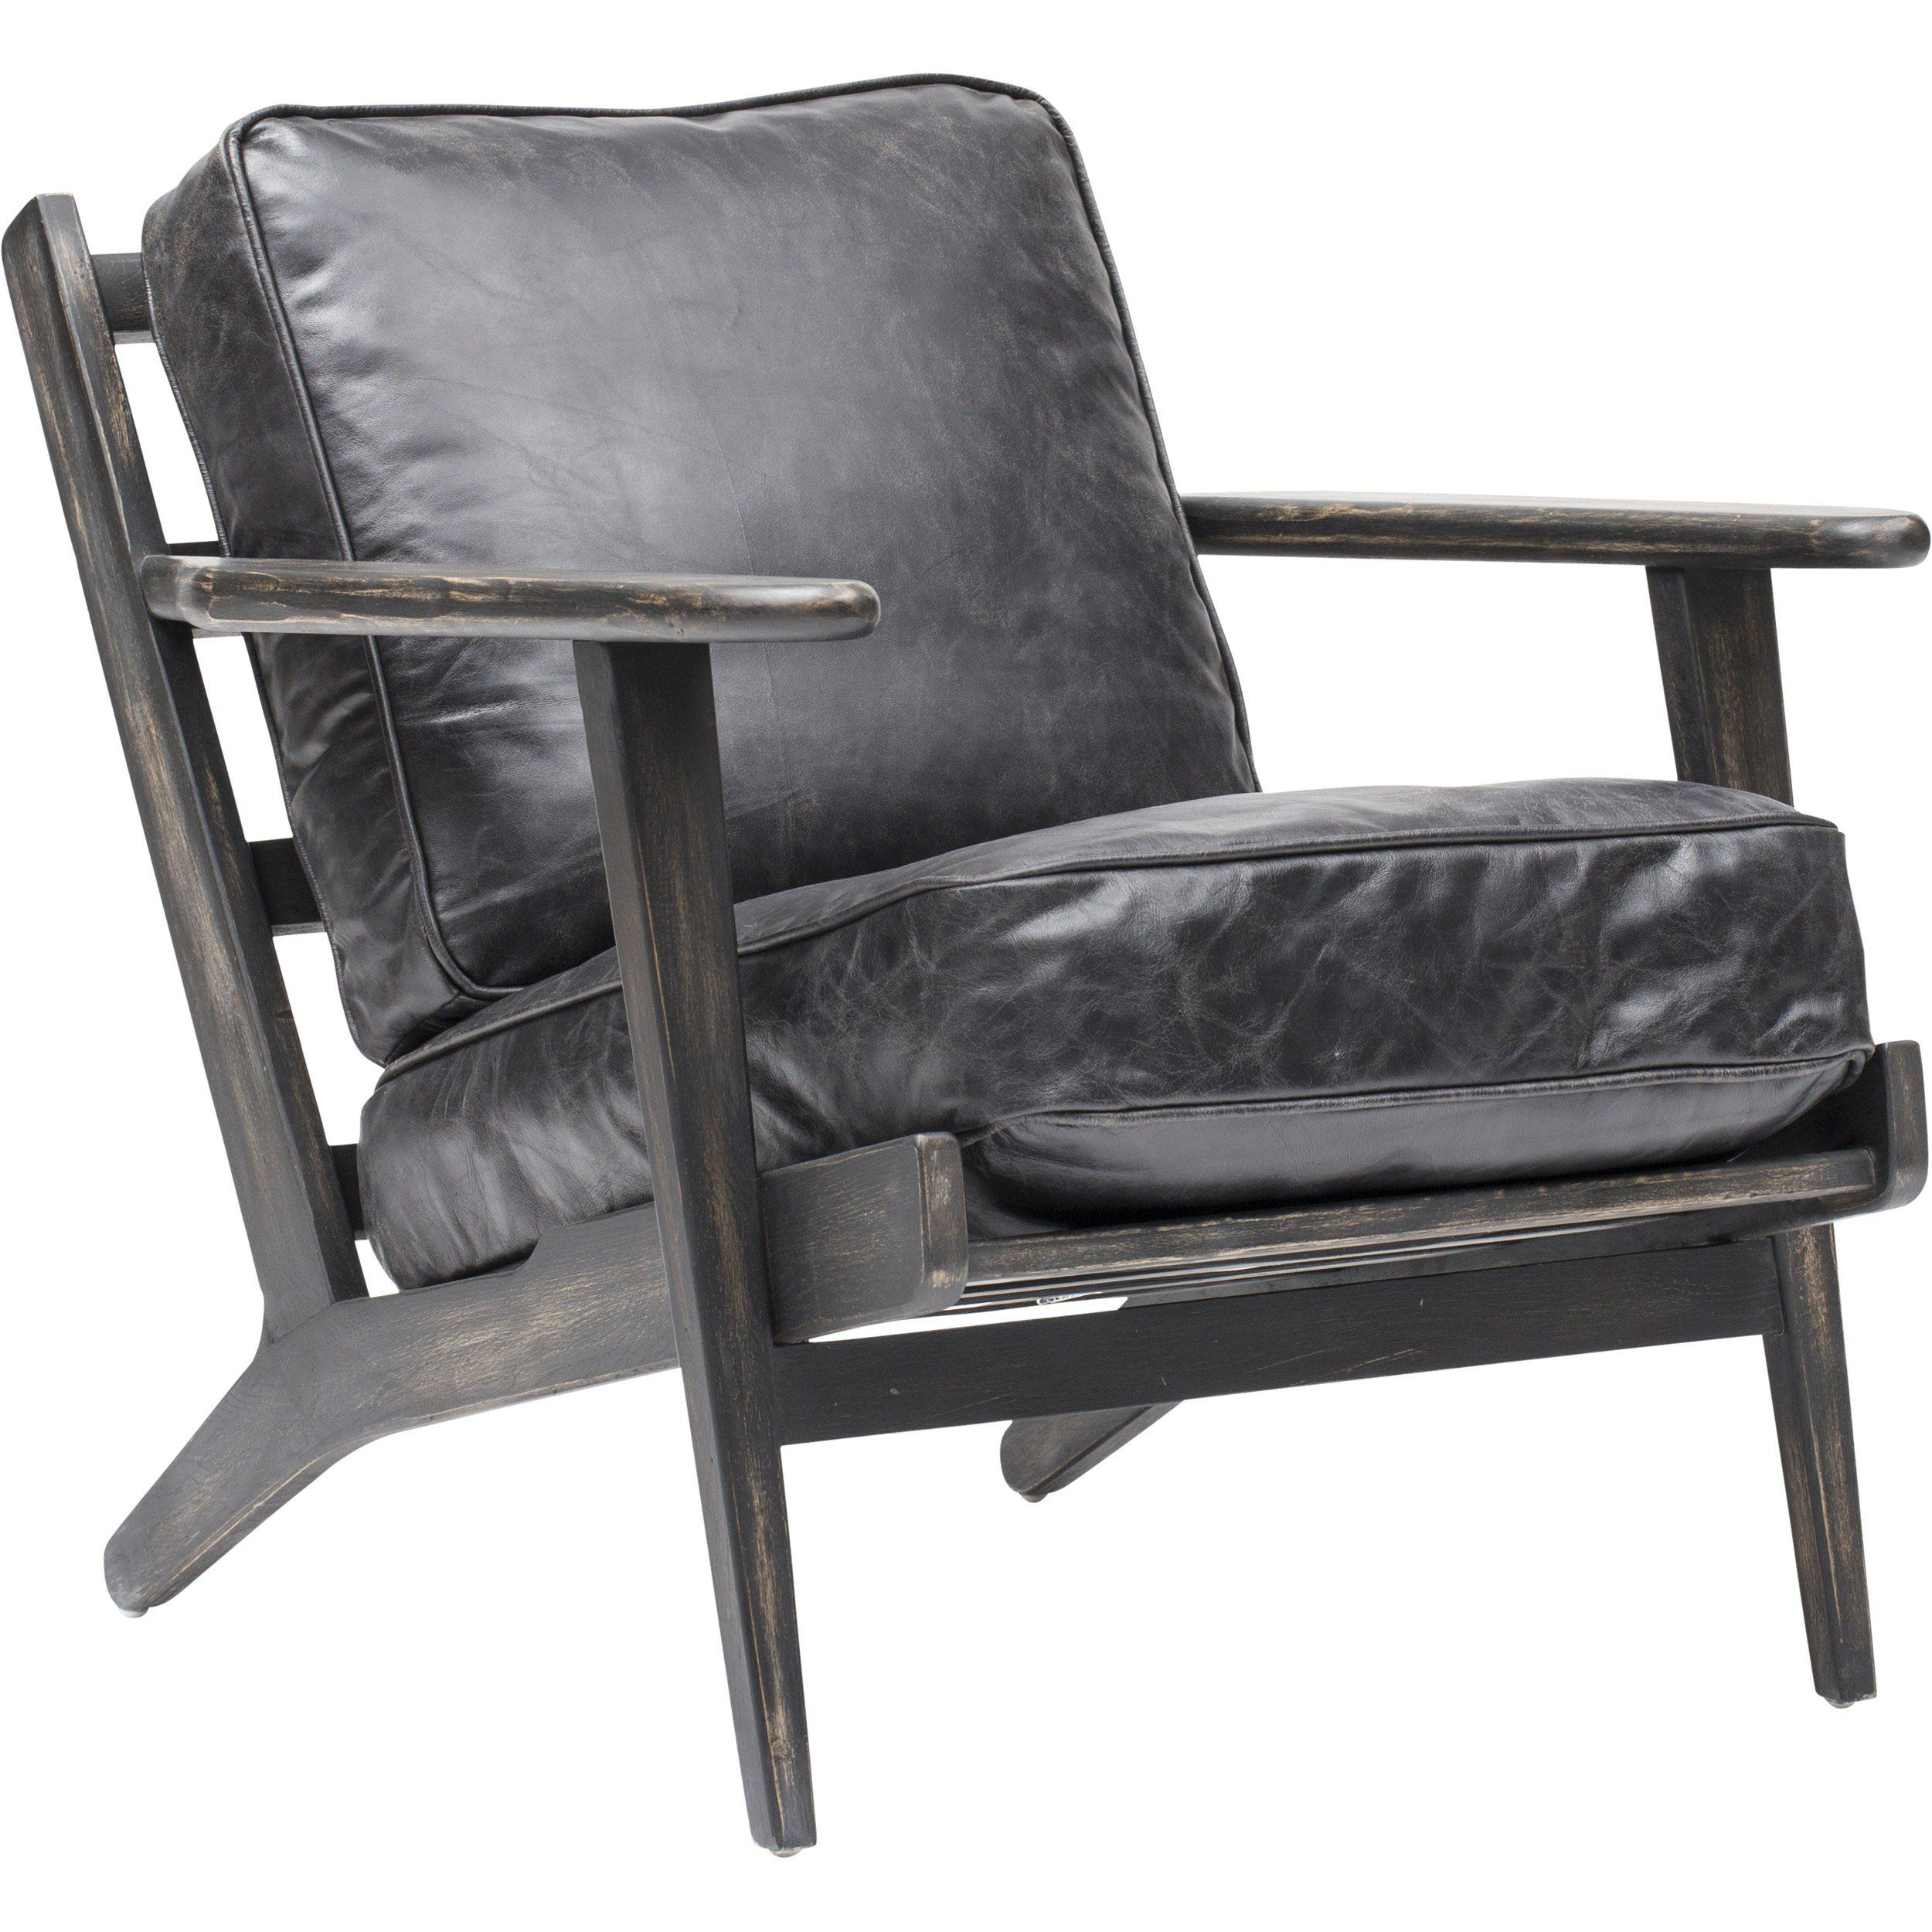 farstrup by lounge seventies from the leather chair